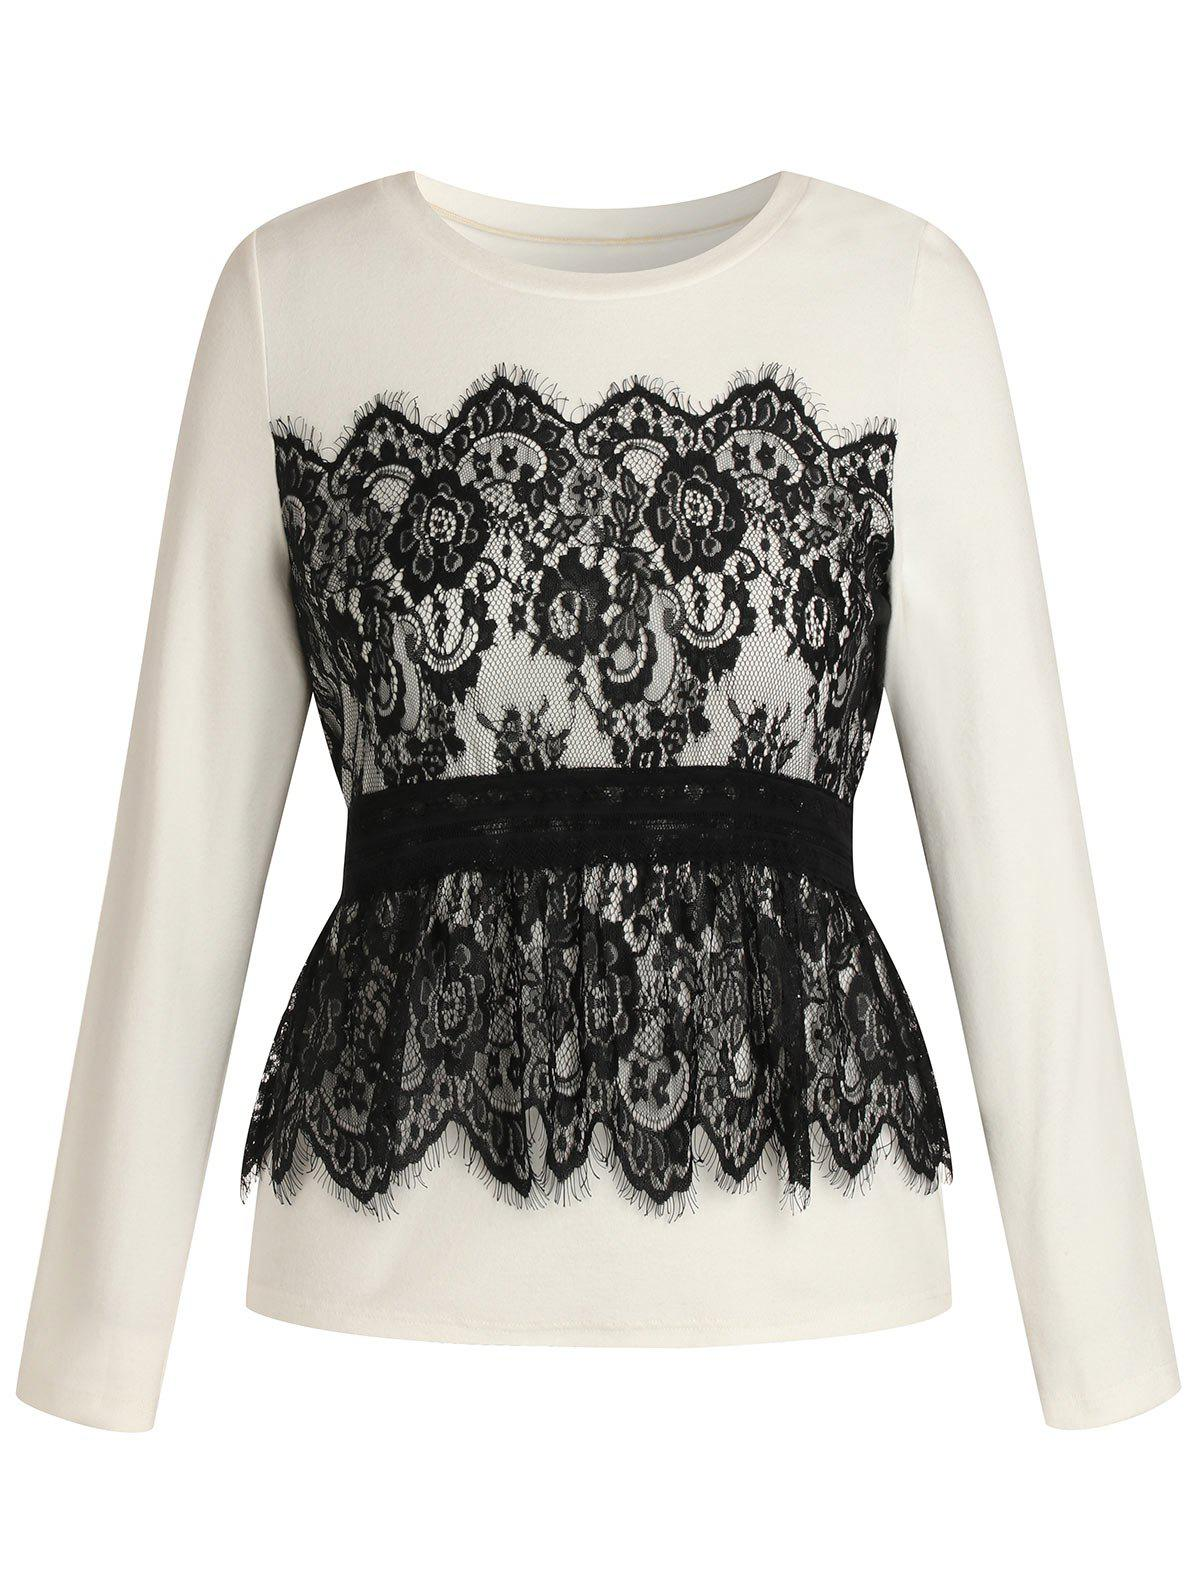 Plus Size Lace Splicing Long Sleeves T Shirt - WHITE 5X